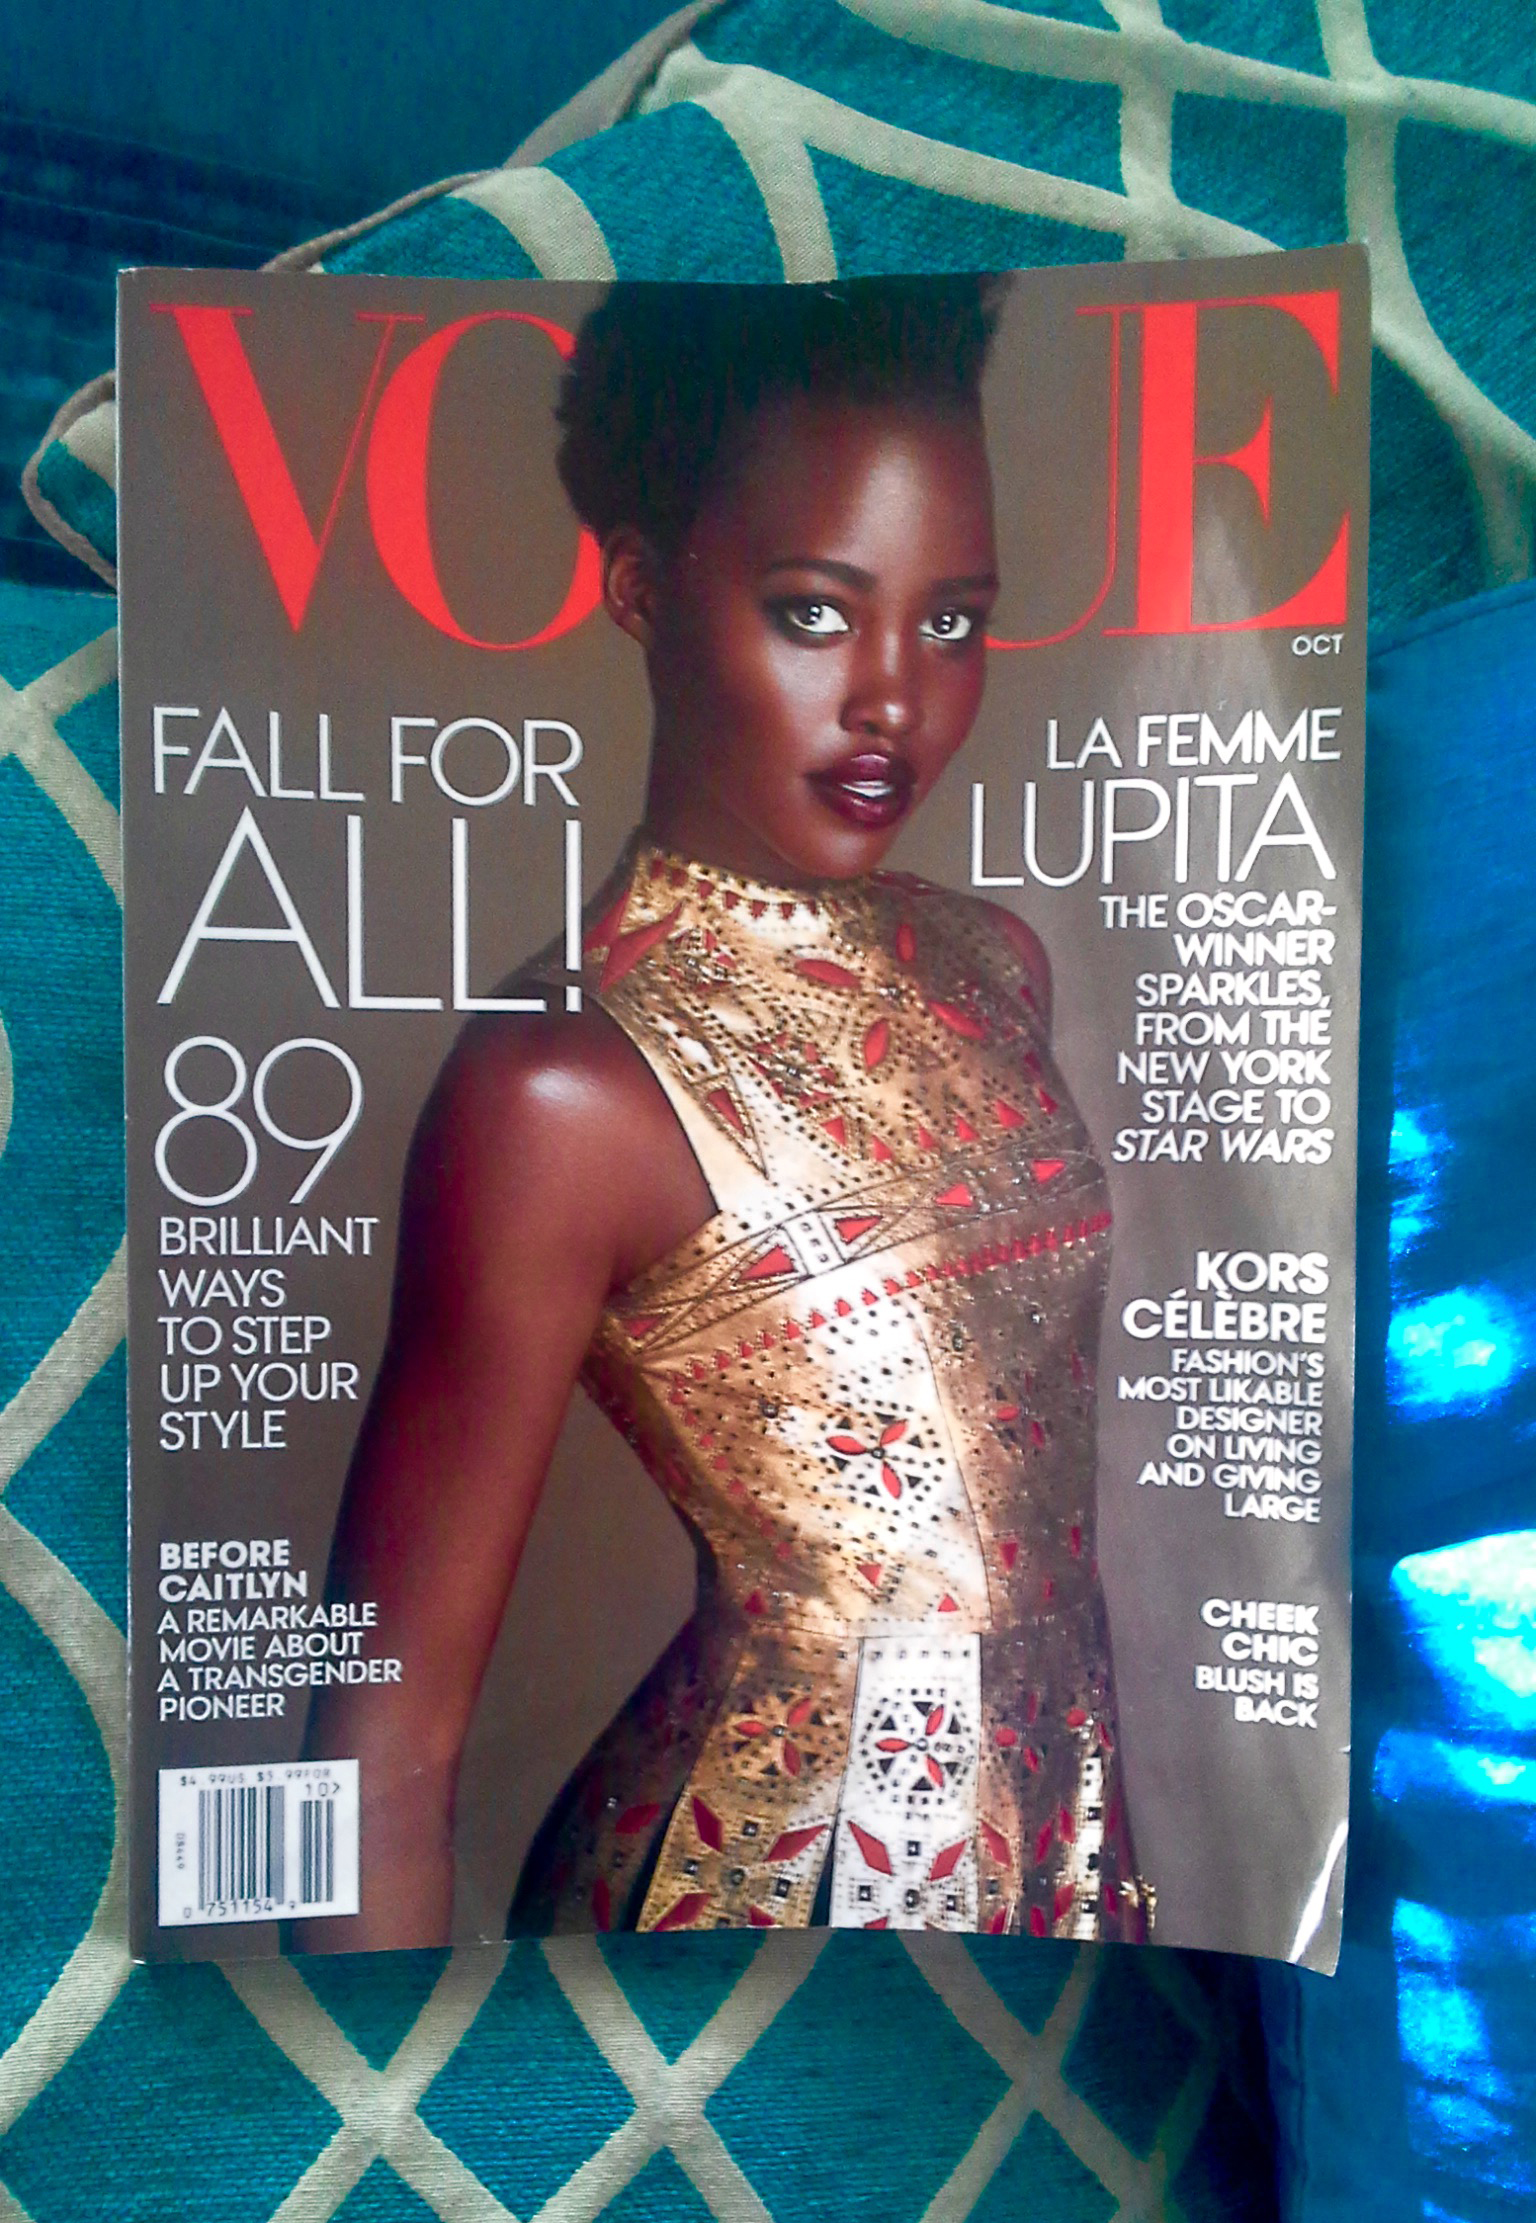 Lupita Nyong'o on the cover of October's Vogue magazine (Photo Credit: Shola Mapp)